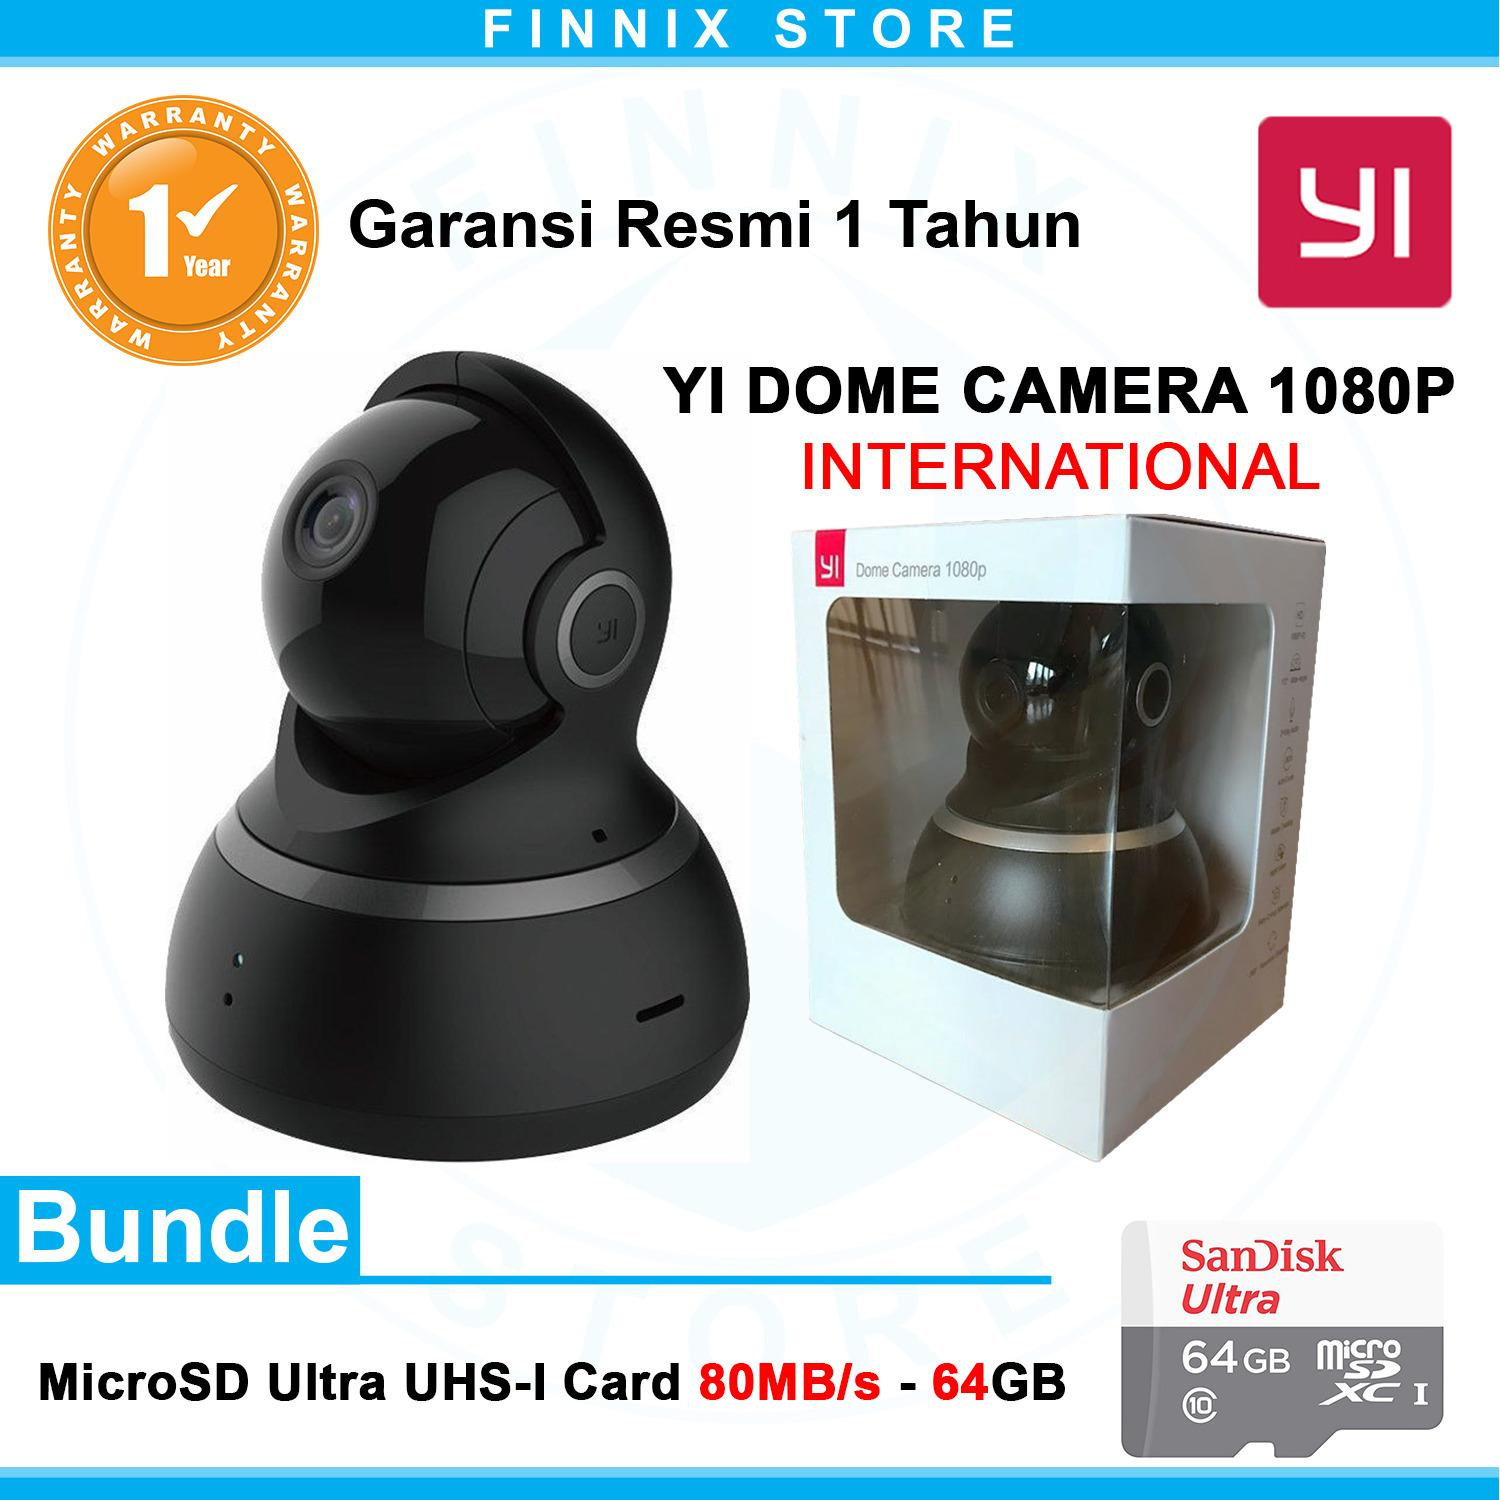 Xiaomi Yi Dome 1080P Smart IP Camera International Version Bundle SanDisk 64GB